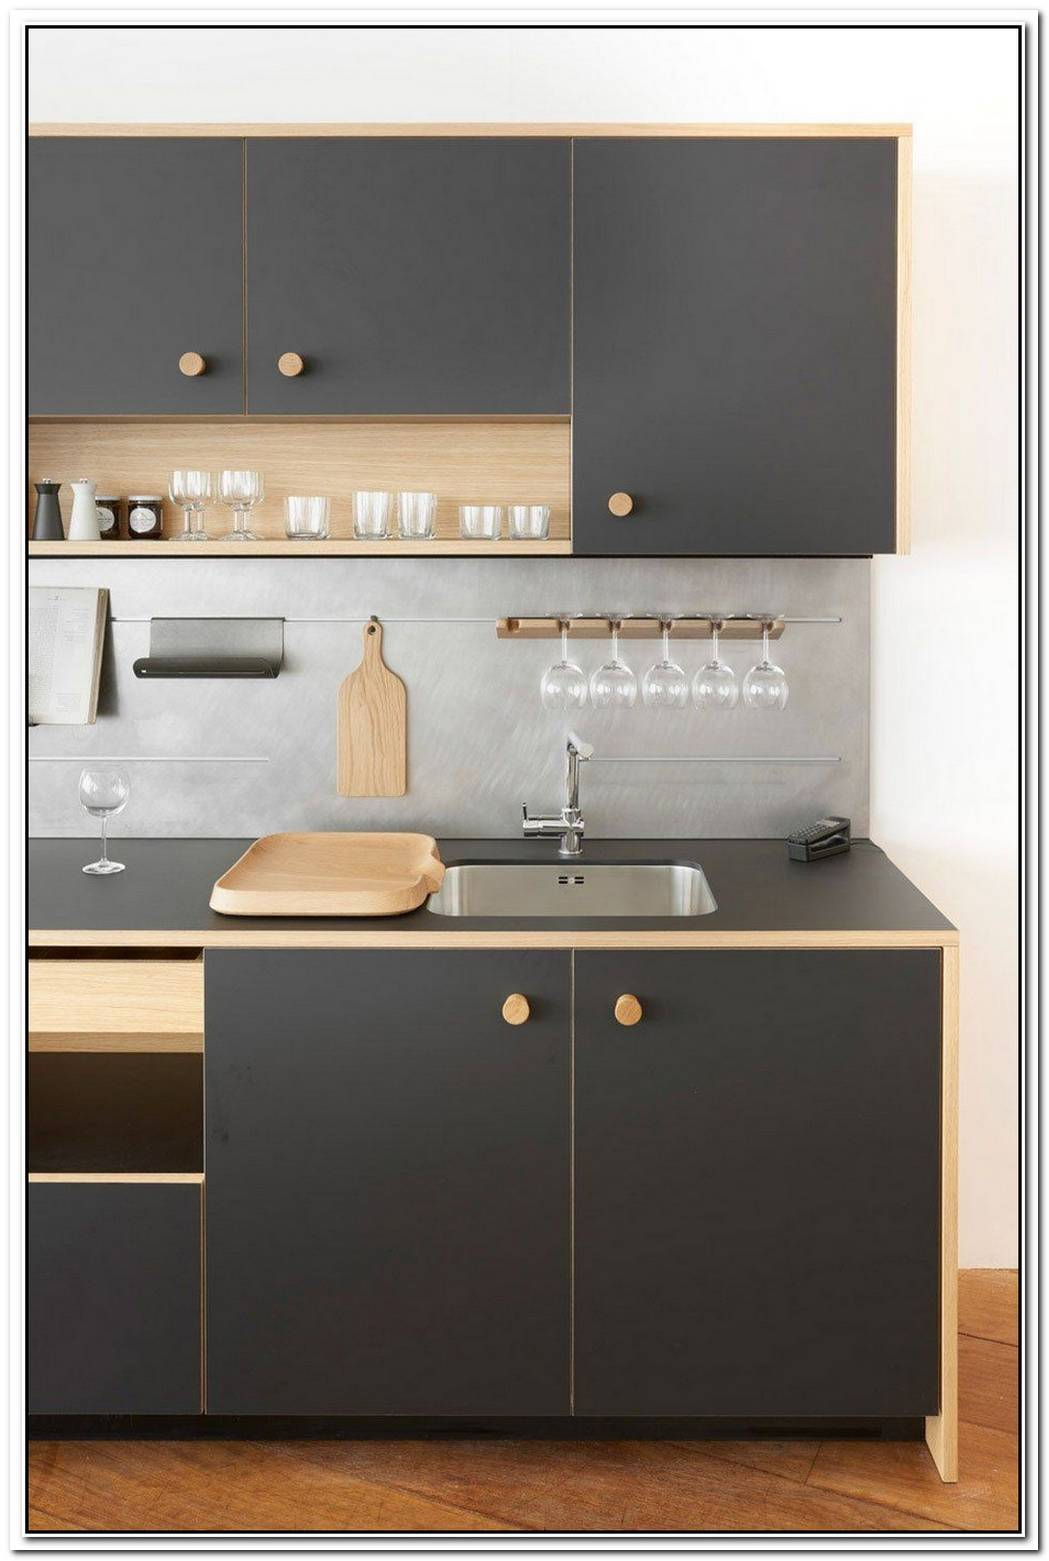 Classy Kitchens From Schiffini